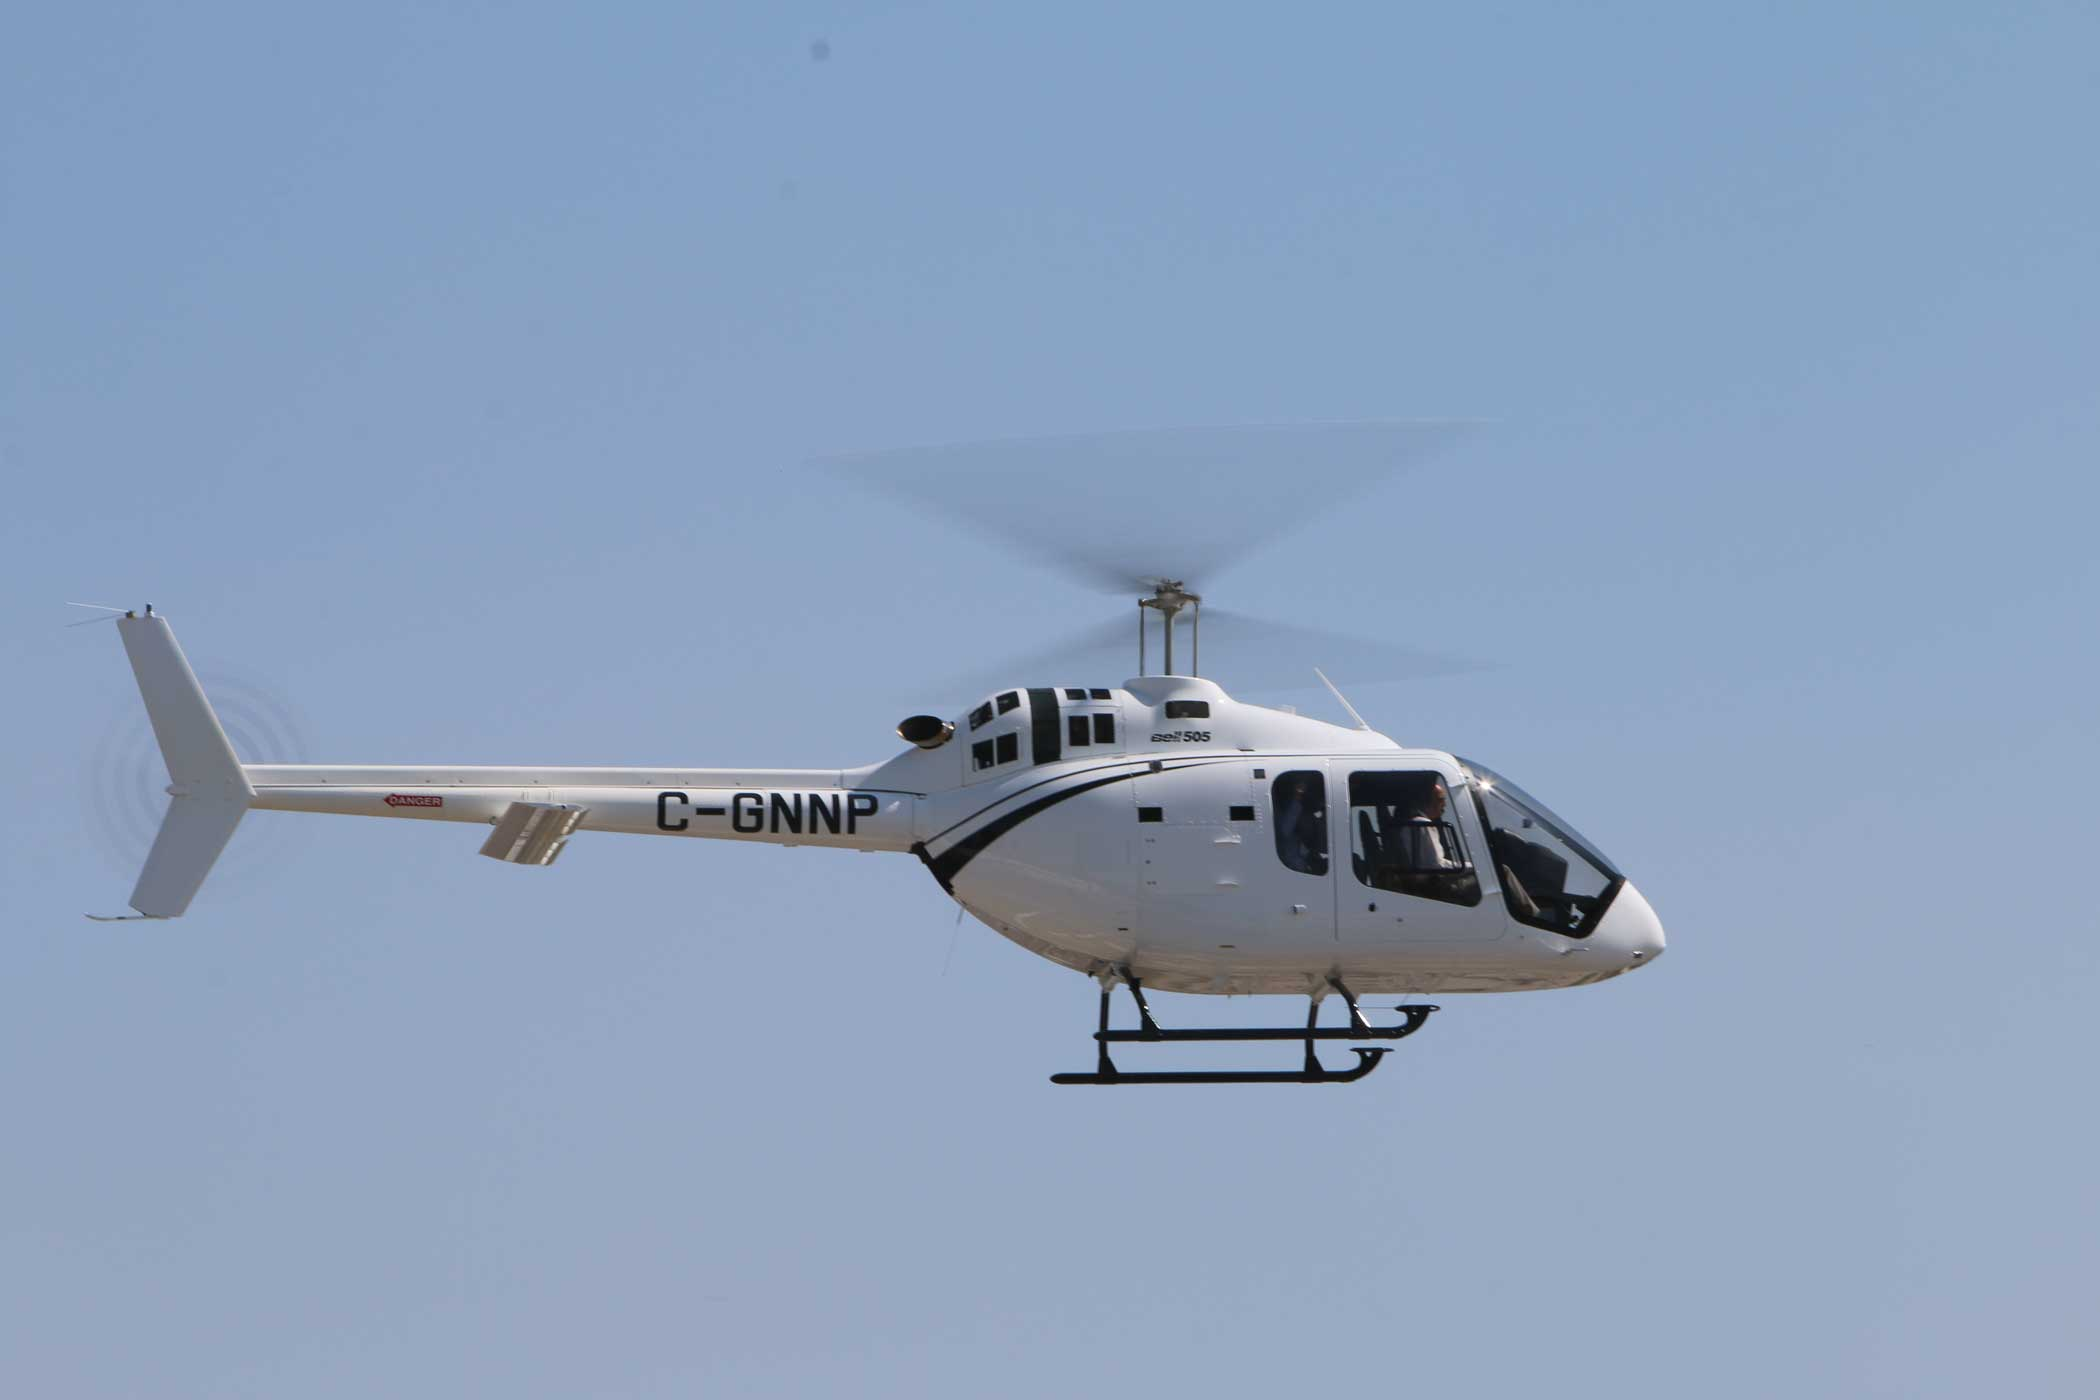 helicopter training dallas with Bell 505 Delivers Smooth Ride Test Flight on  as well Male On Monday Channing Tatum besides Soccer mom t shirts 235245041131667291 besides Bell 505 Delivers Smooth Ride Test Flight in addition G 6lsk1fs2nk20vorkn5rbma0.